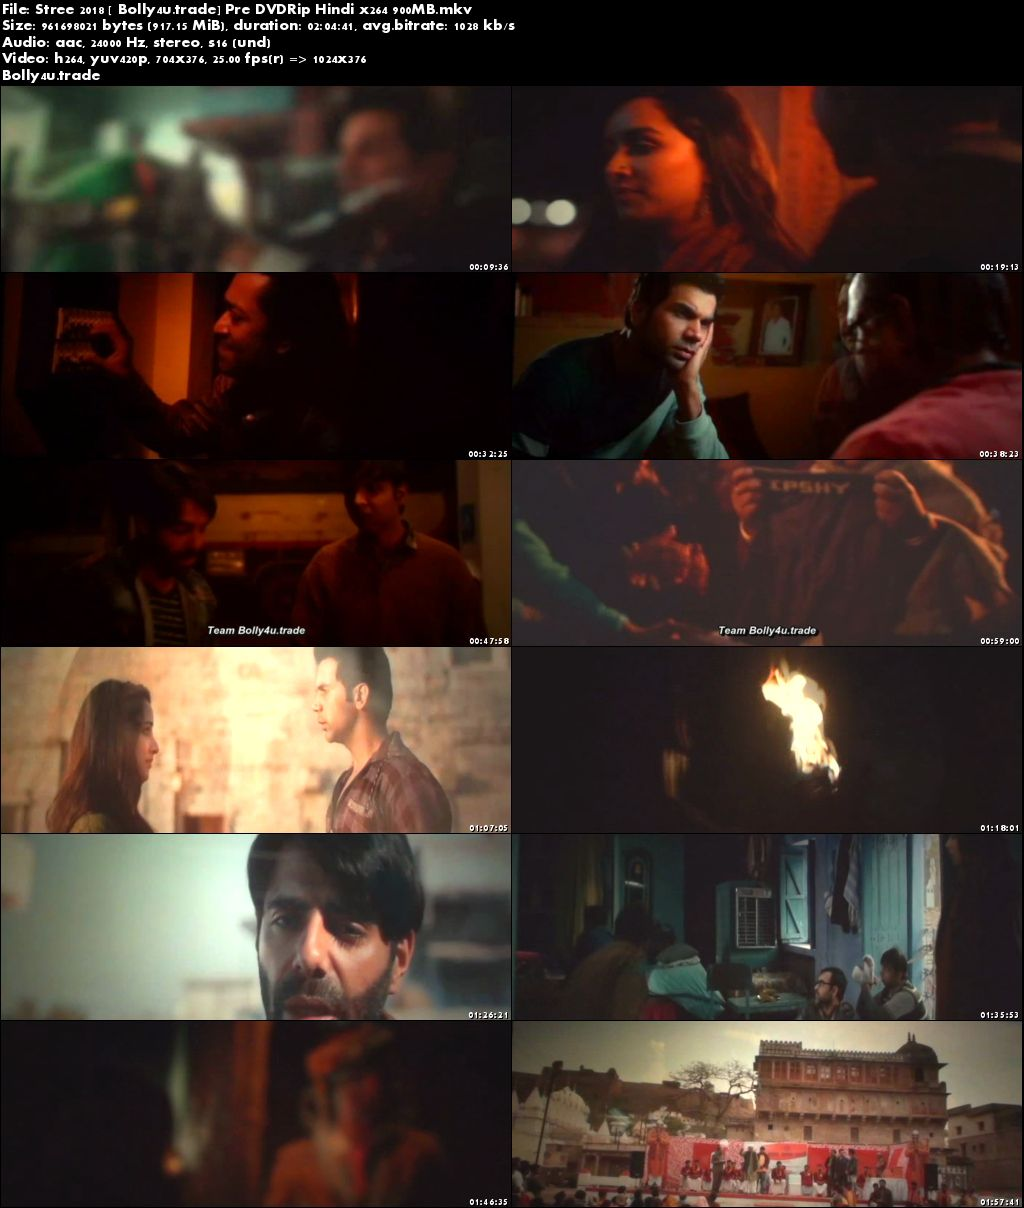 Stree 2018 Pre DVDRip 700Mb Full Hindi Movie Download x264